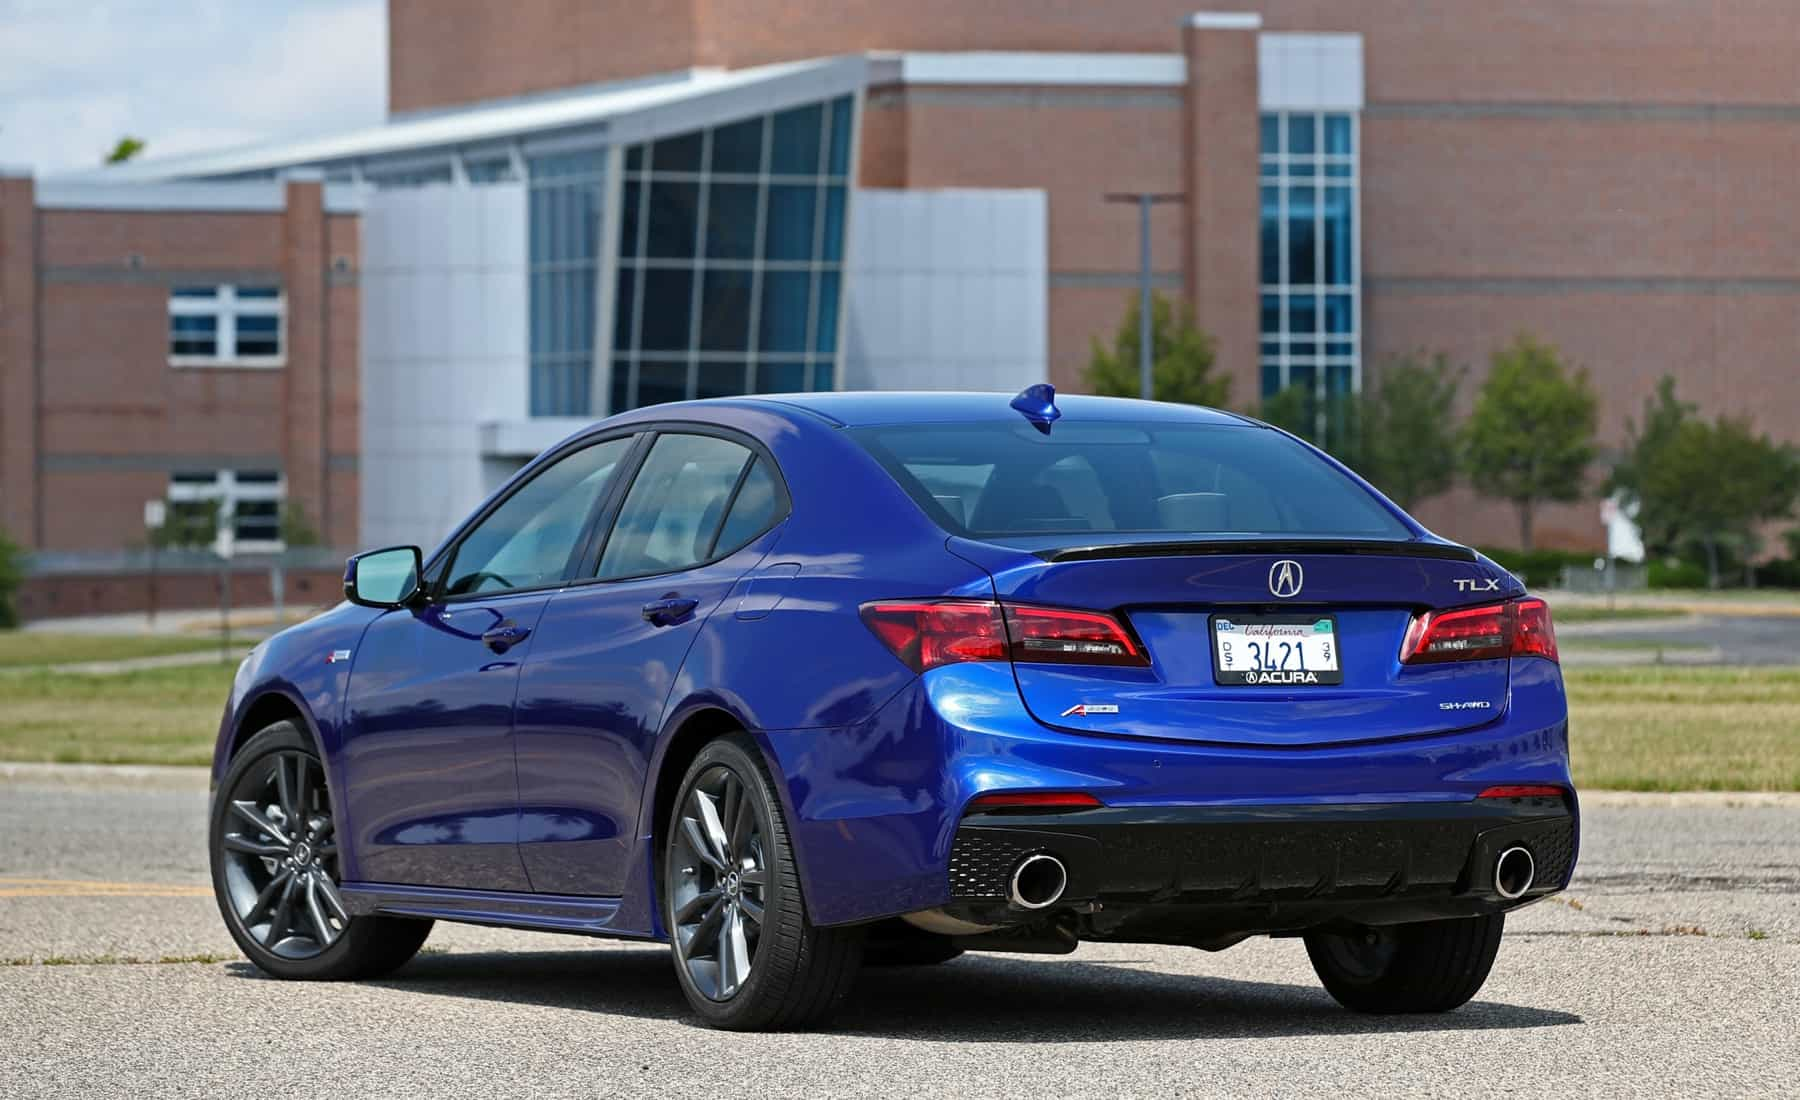 2018 Acura TLX Exterior Rear And Side (Photo 5 of 46)